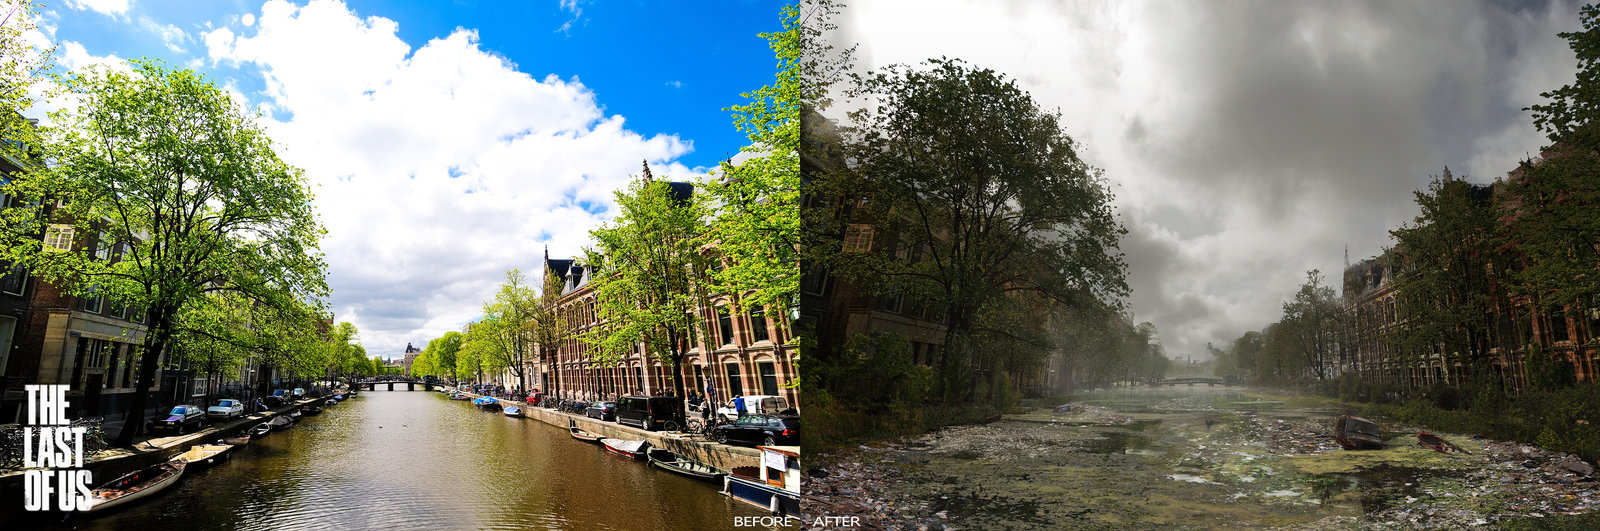 The Last of Us - Amsterdam, Canals